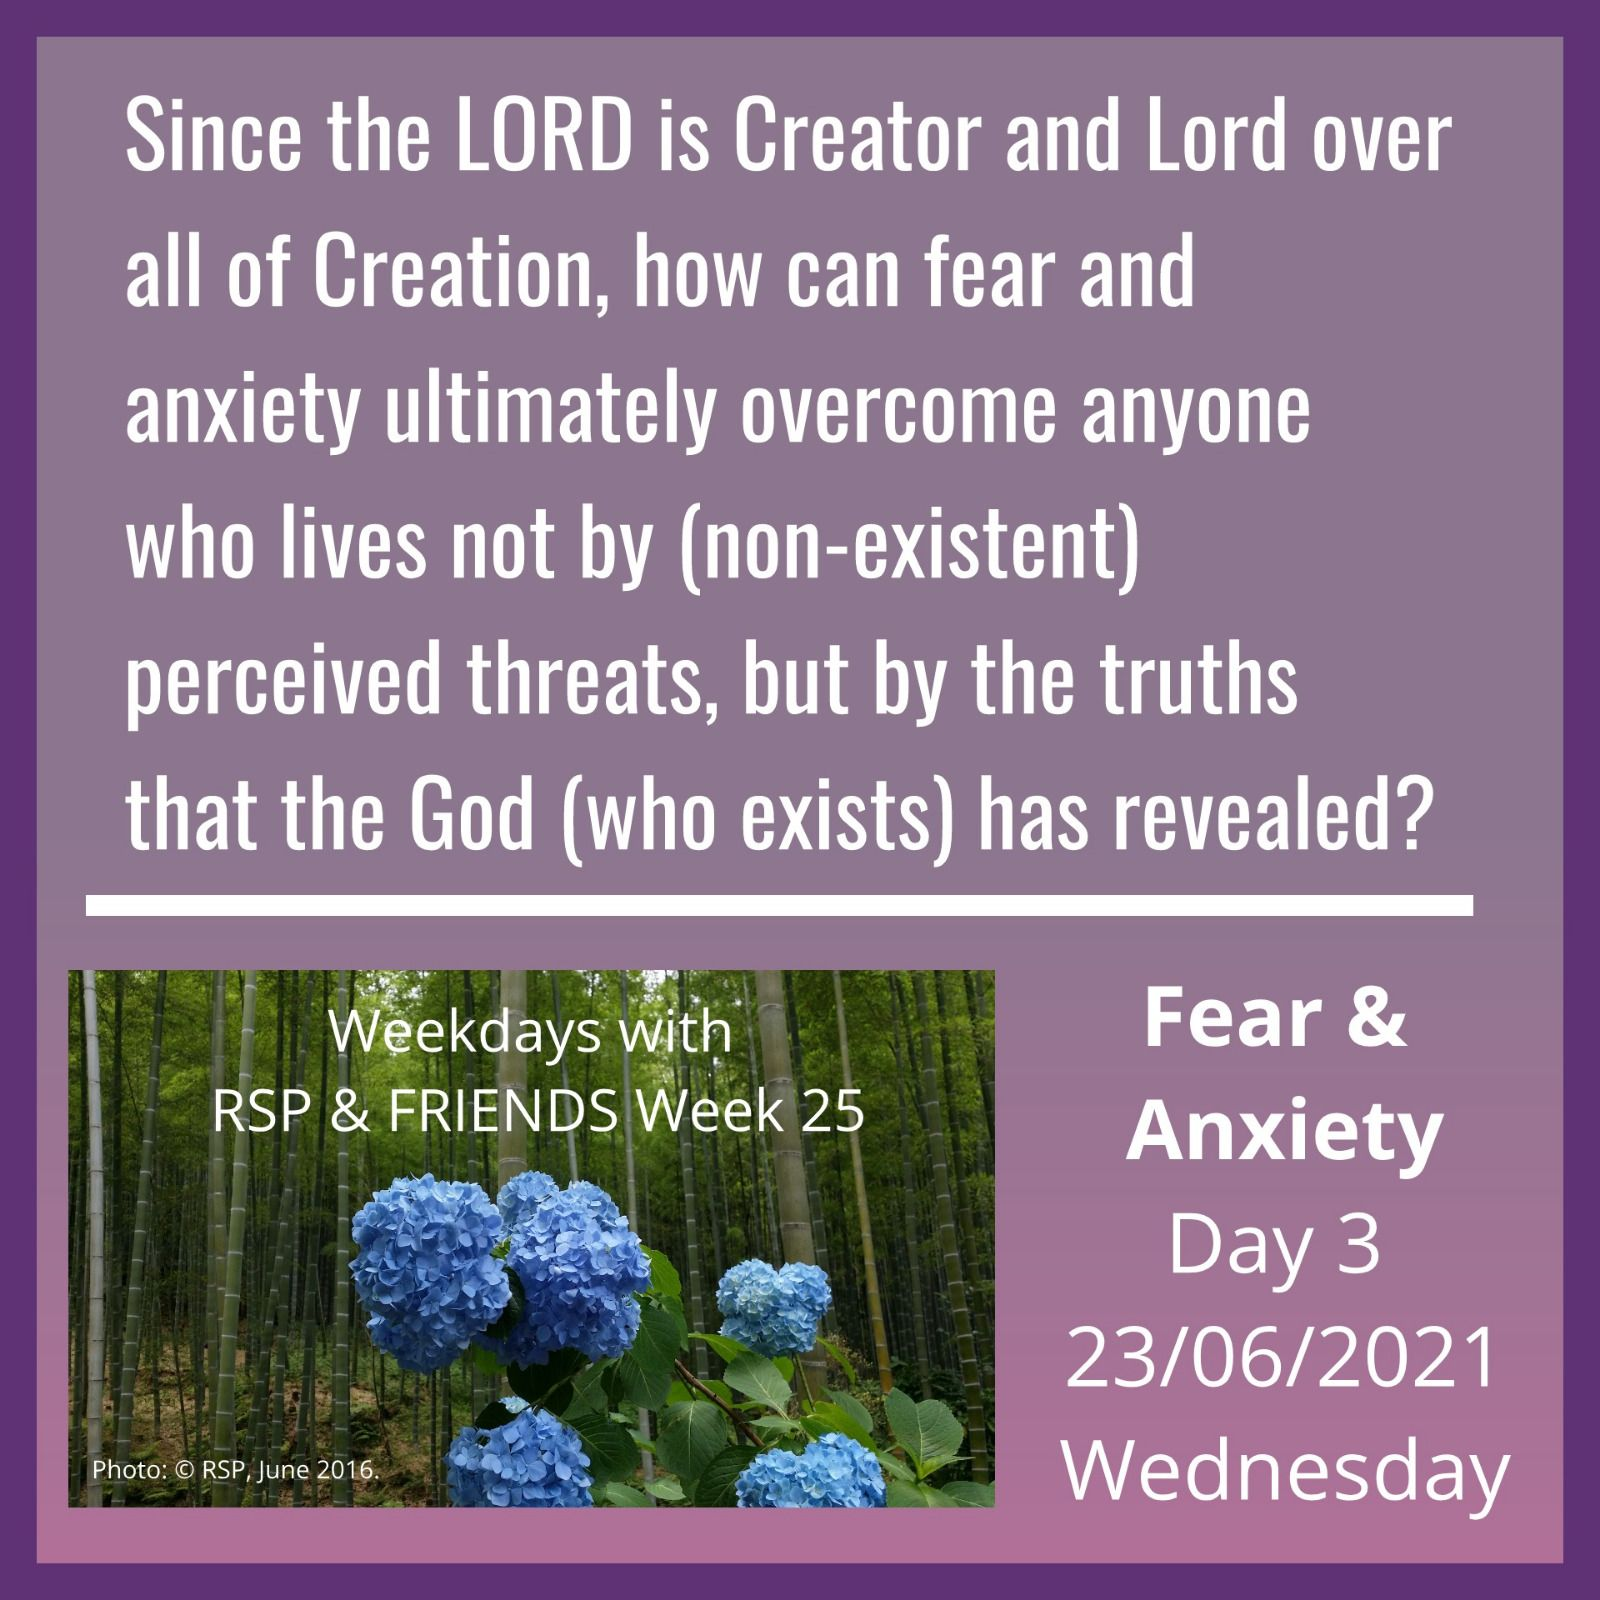 fear & anxiety - day 3